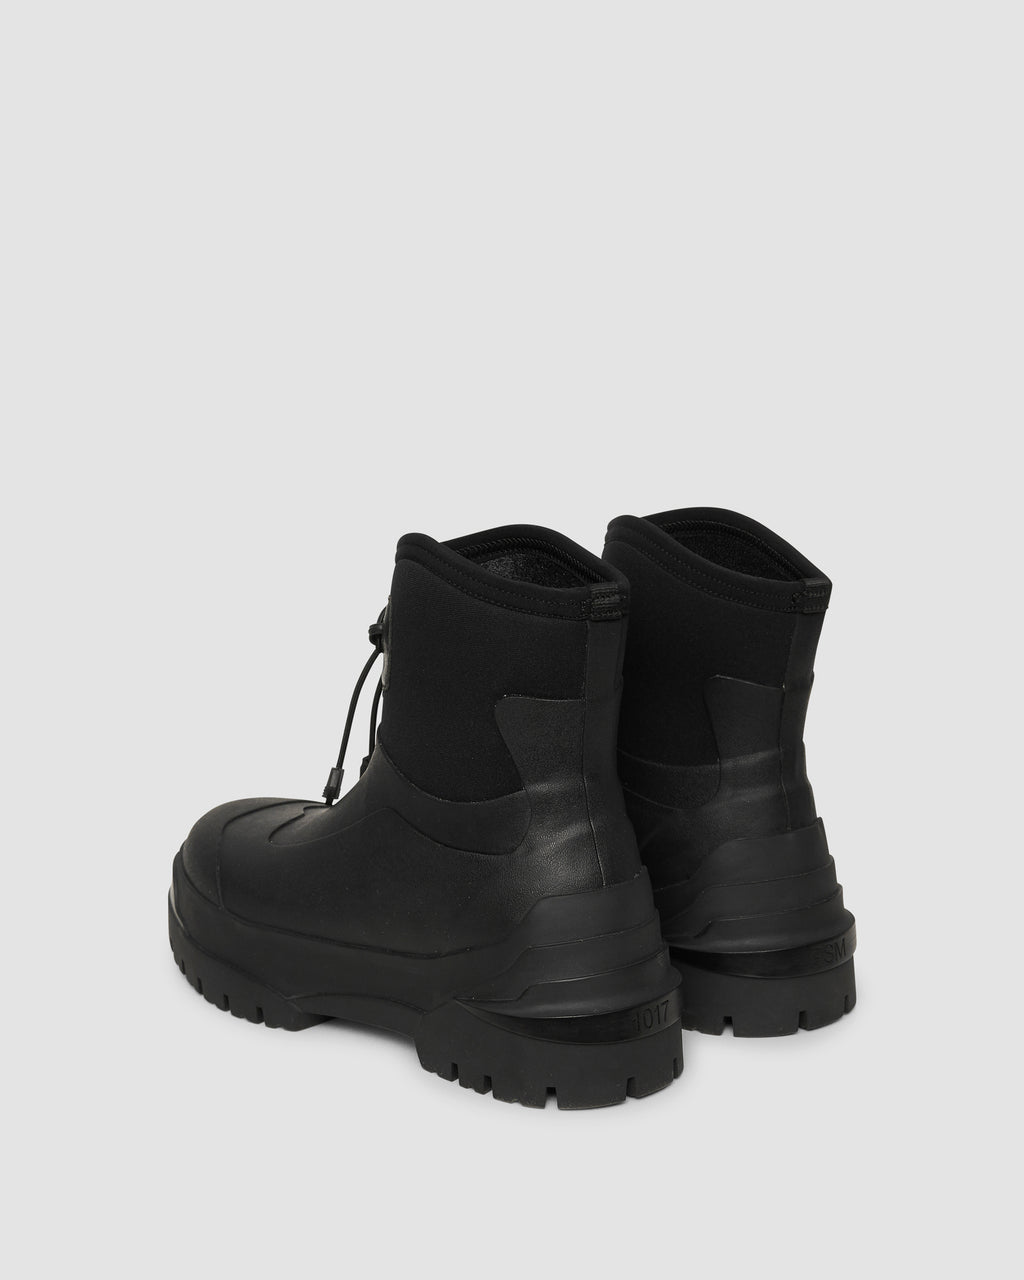 MONCLER ALISON SHOES